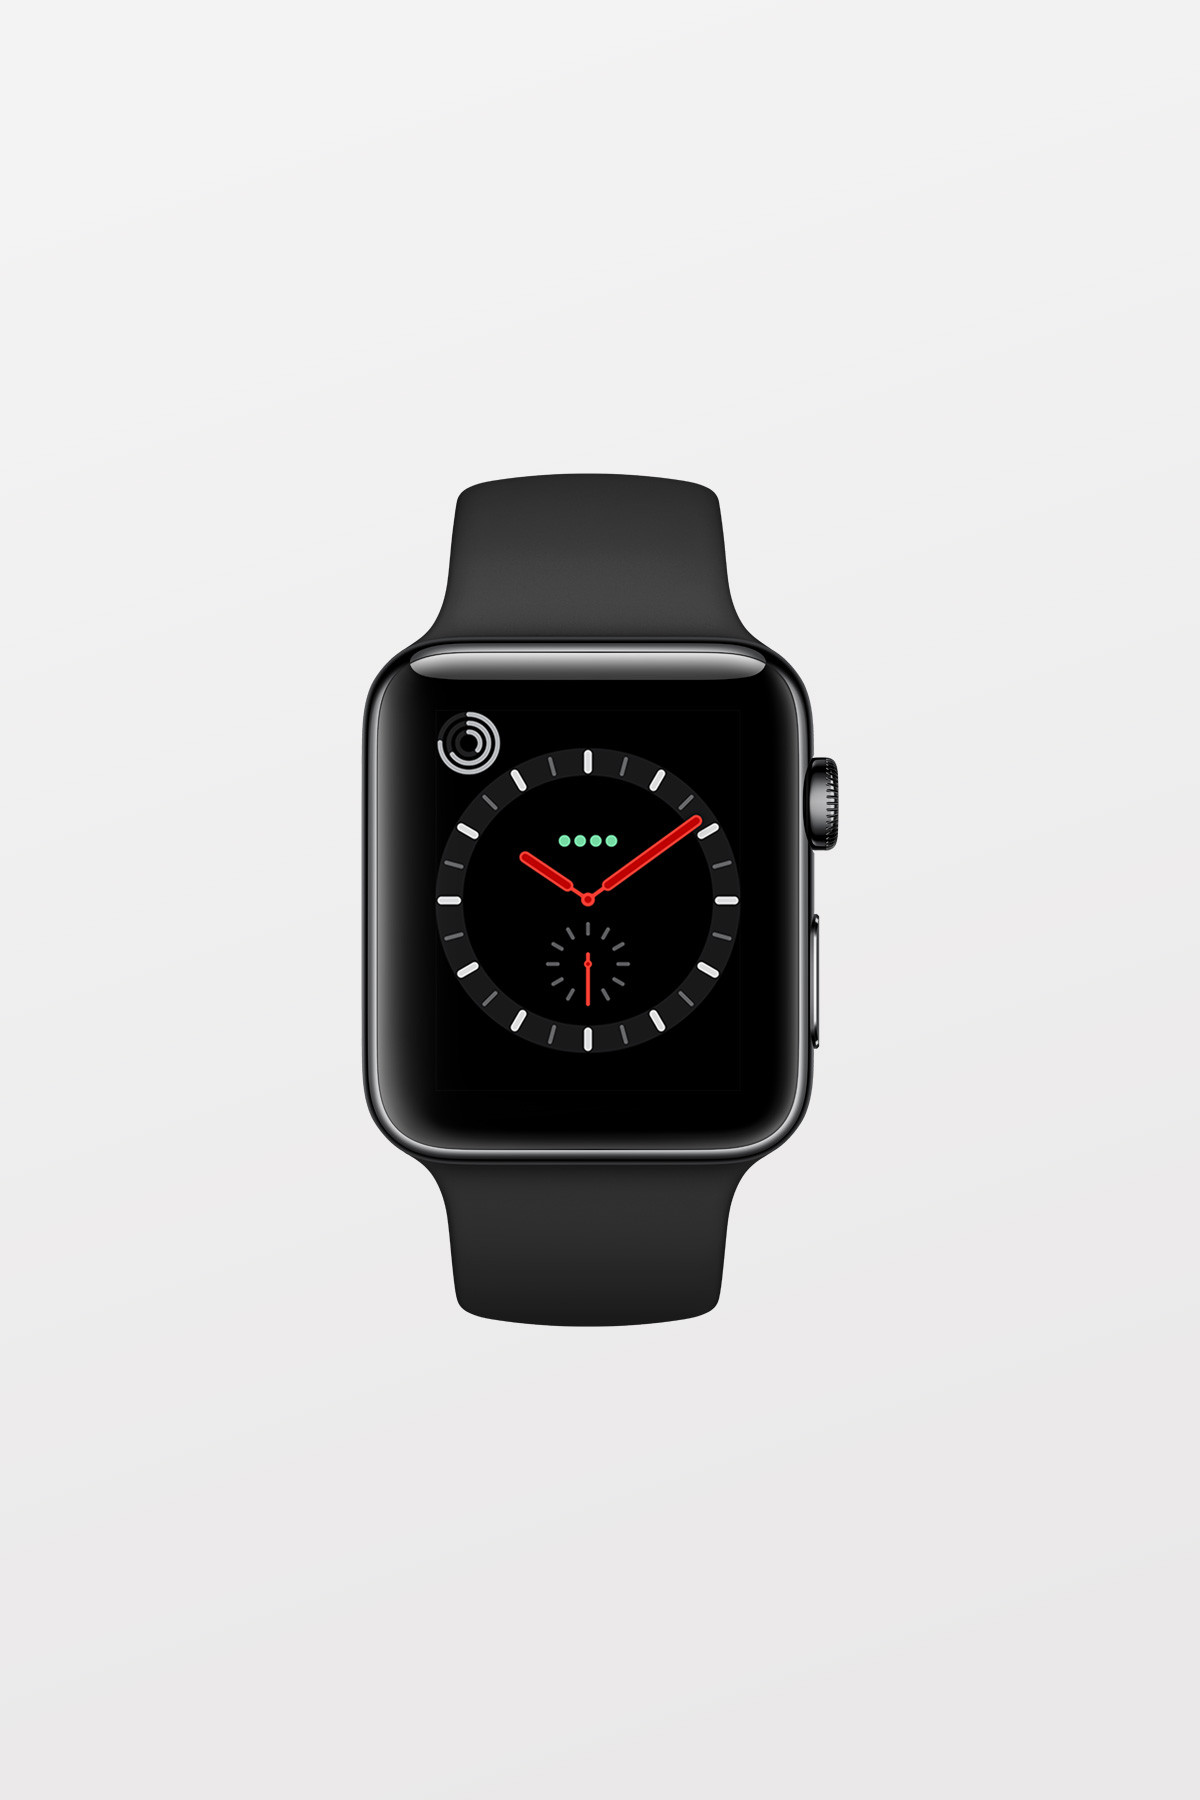 Apple Watch Series 3 GPS + Cellular - 42mm - Space Black Stainless Steel with Black Sport Band - Refurbished